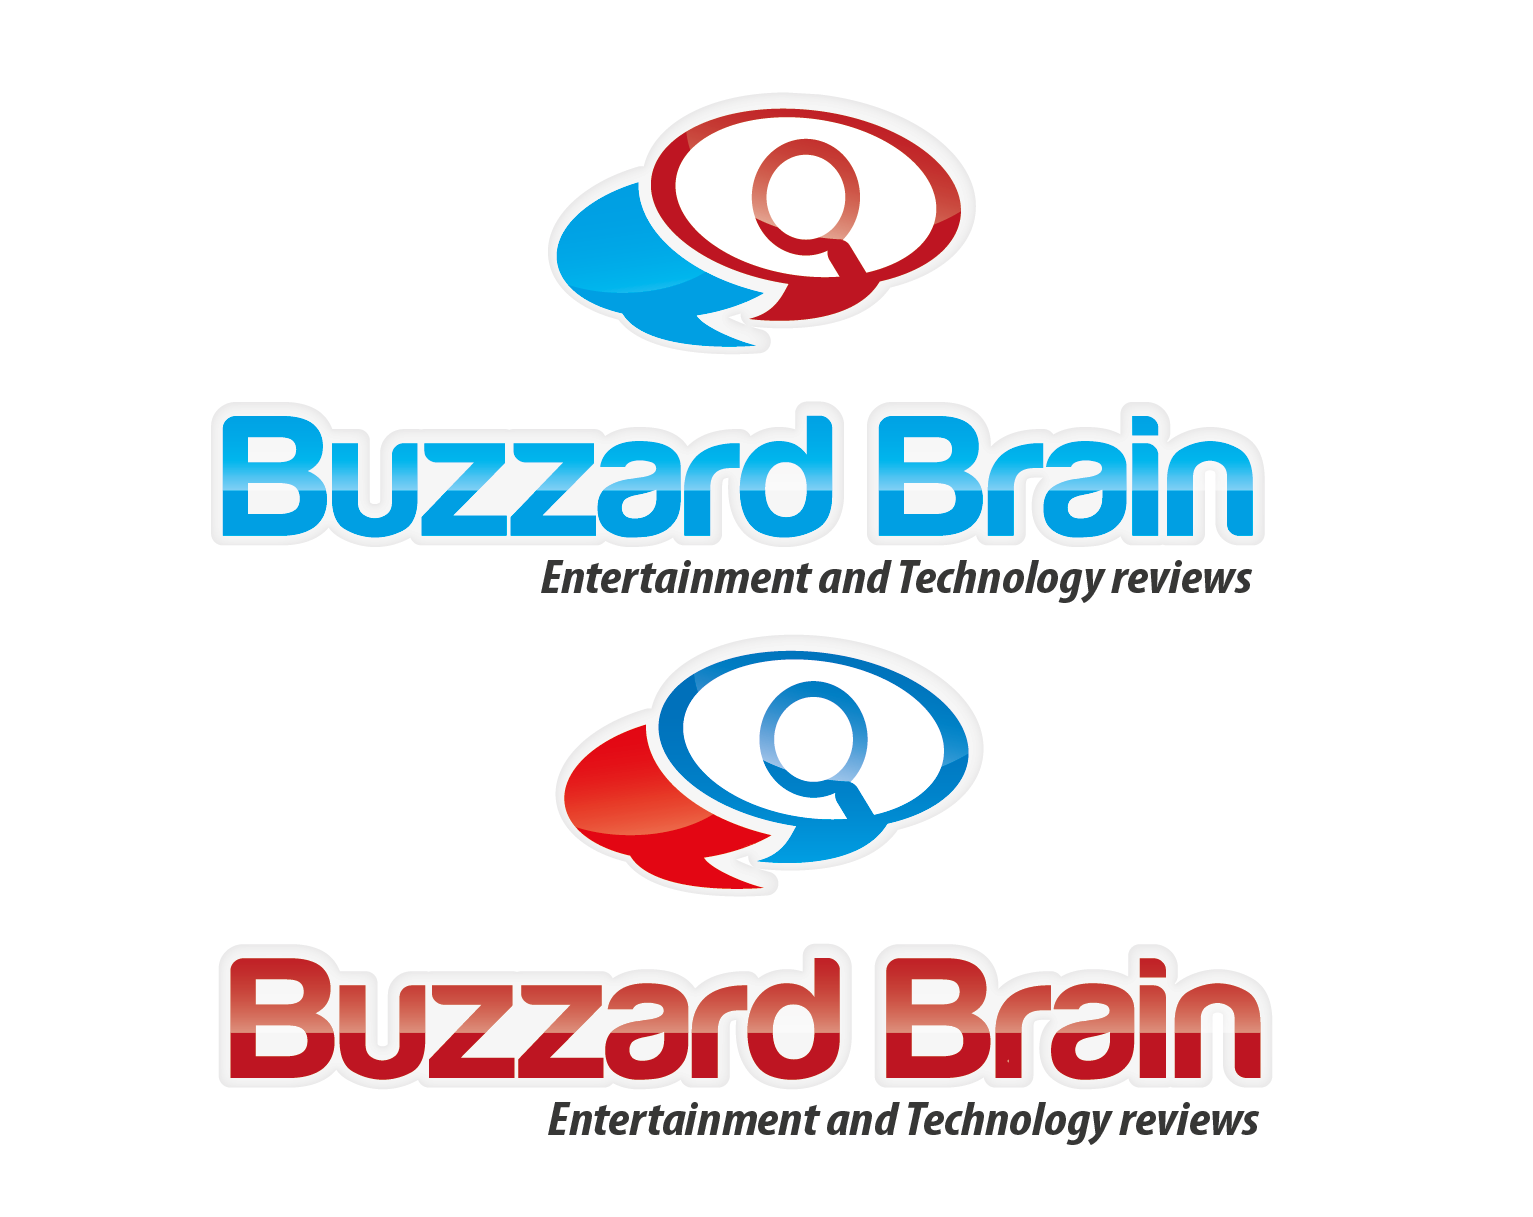 Logo Design by 354studio - Entry No. 48 in the Logo Design Contest Buzzard Brain Logo Design.